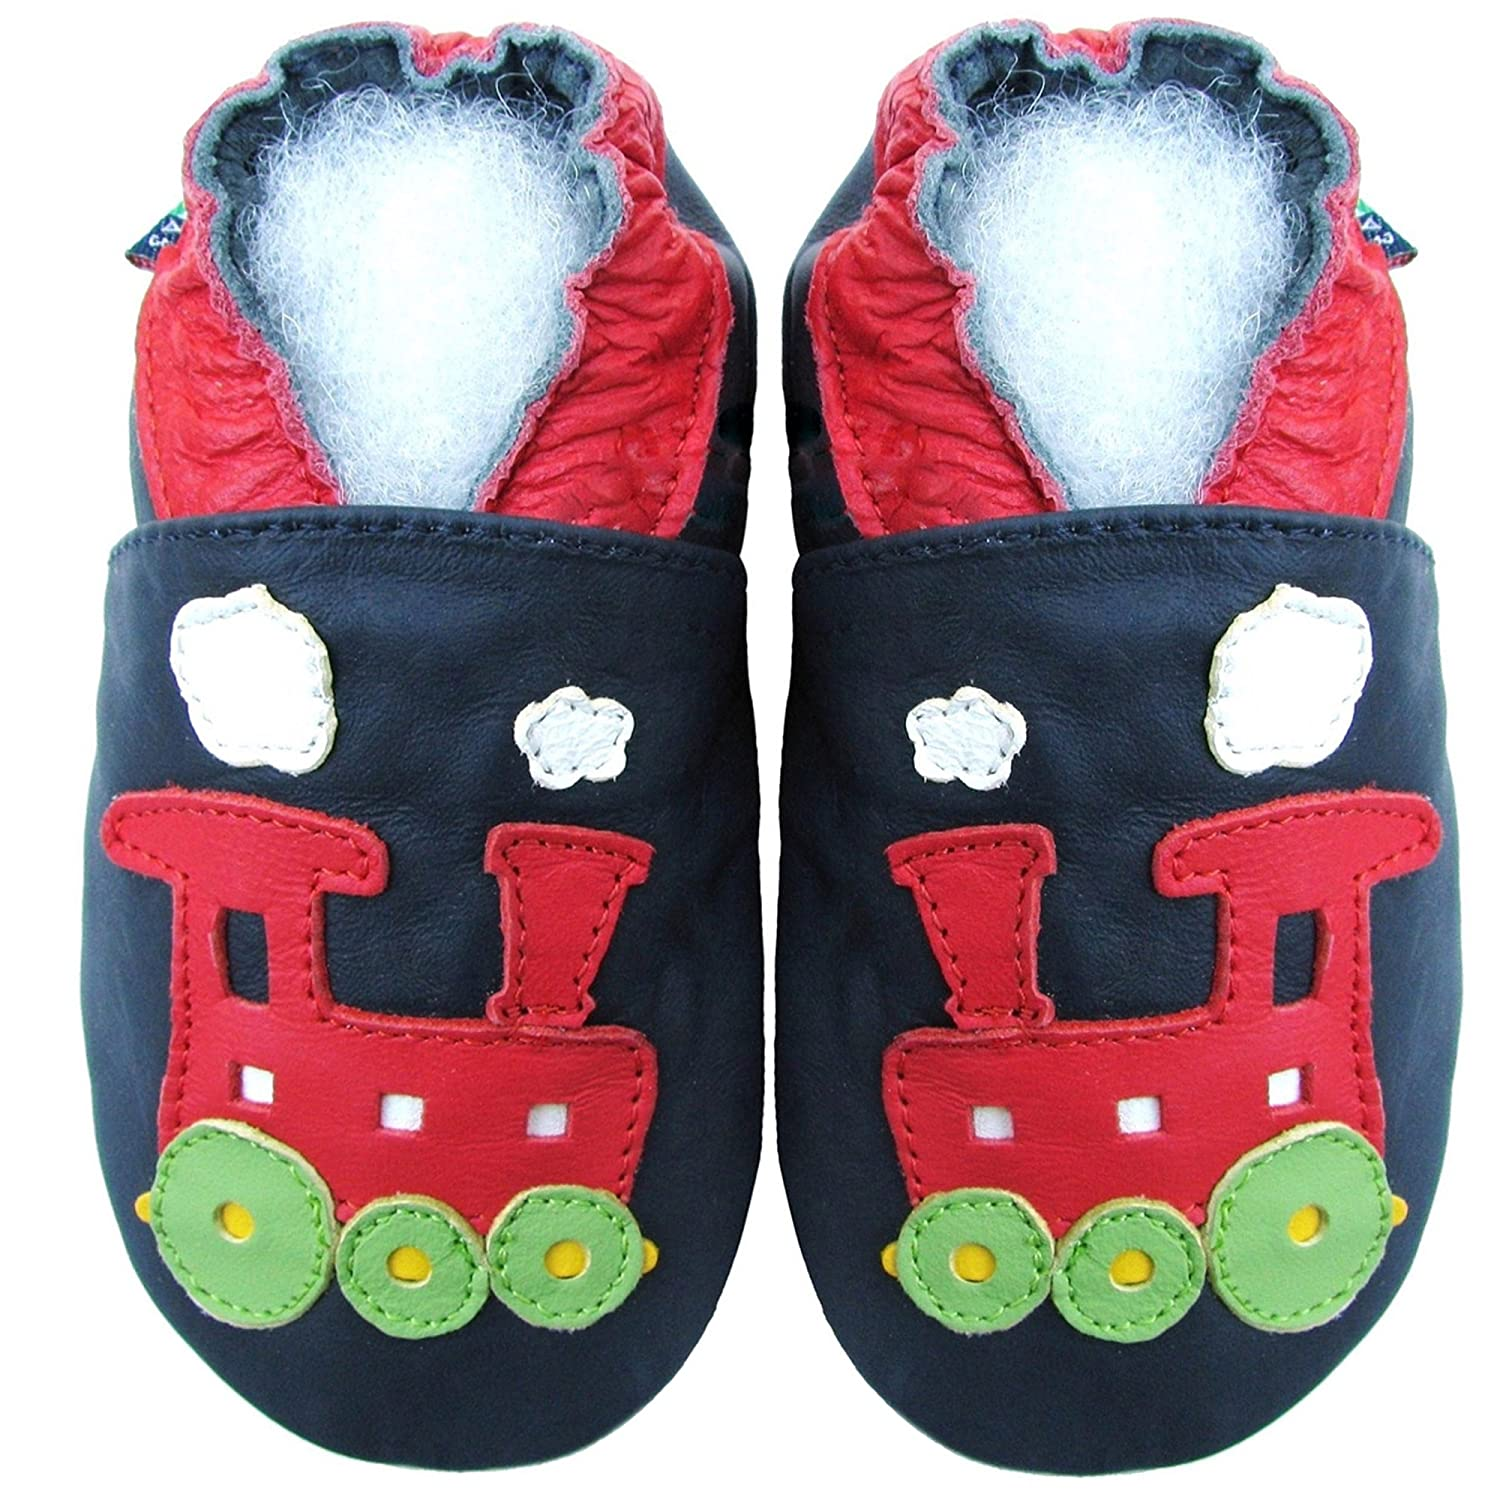 Carozoo Train Dark Blue S Unisex Baby Soft Sole Leather Shoes Kids Toddlers